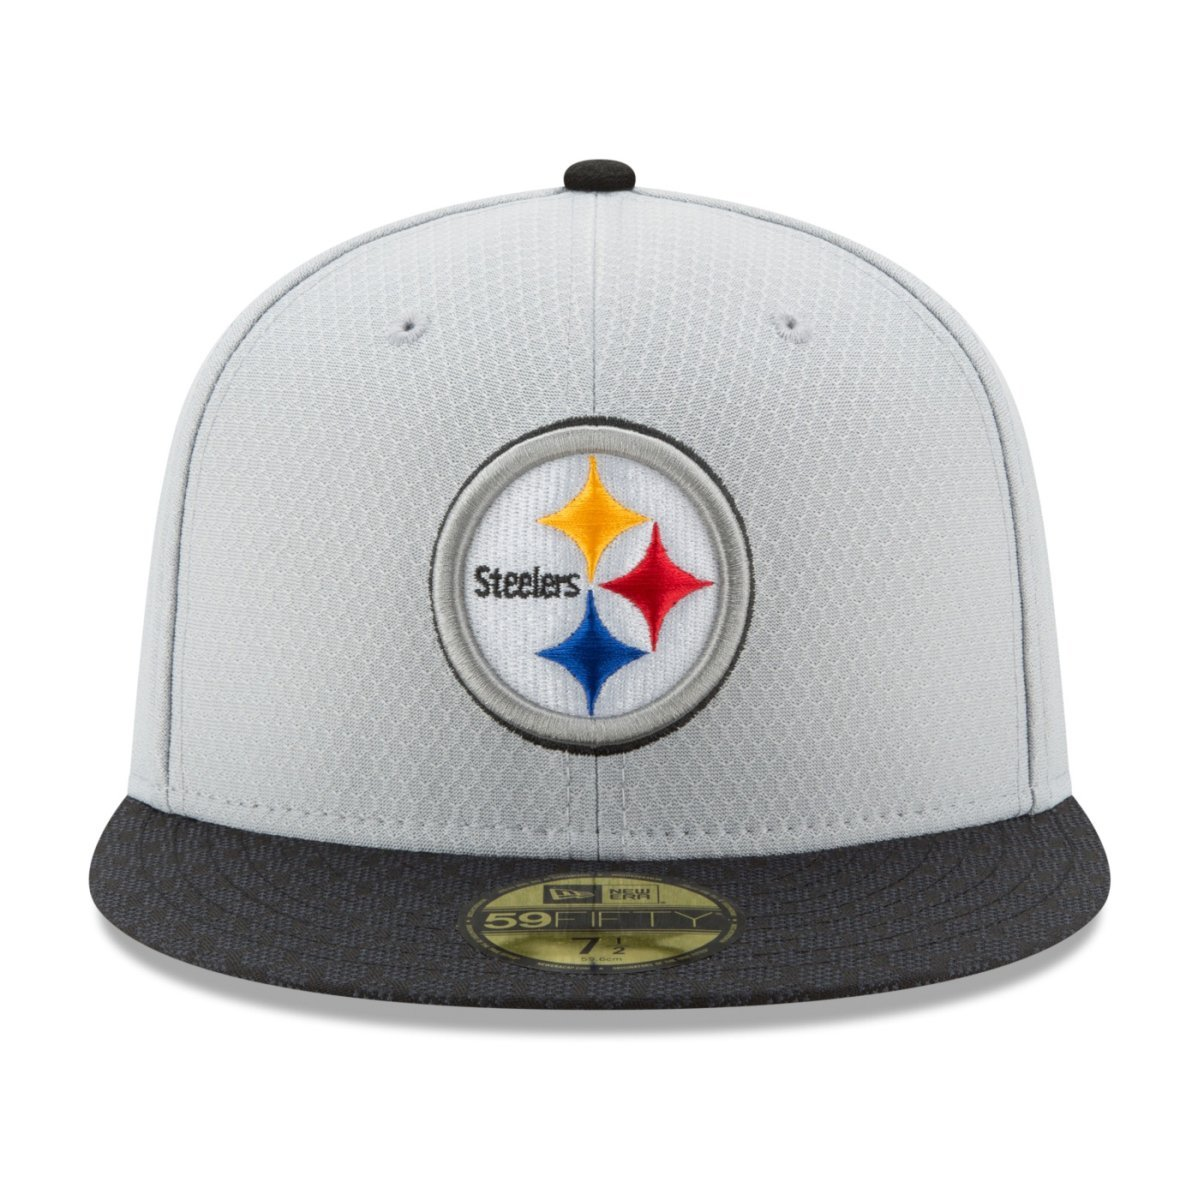 New Era 59Fifty Cap - NFL SIDELINE 2017 Pittsburgh Steelers - 7 7 8   Amazon.co.uk  Sports   Outdoors 11824a302